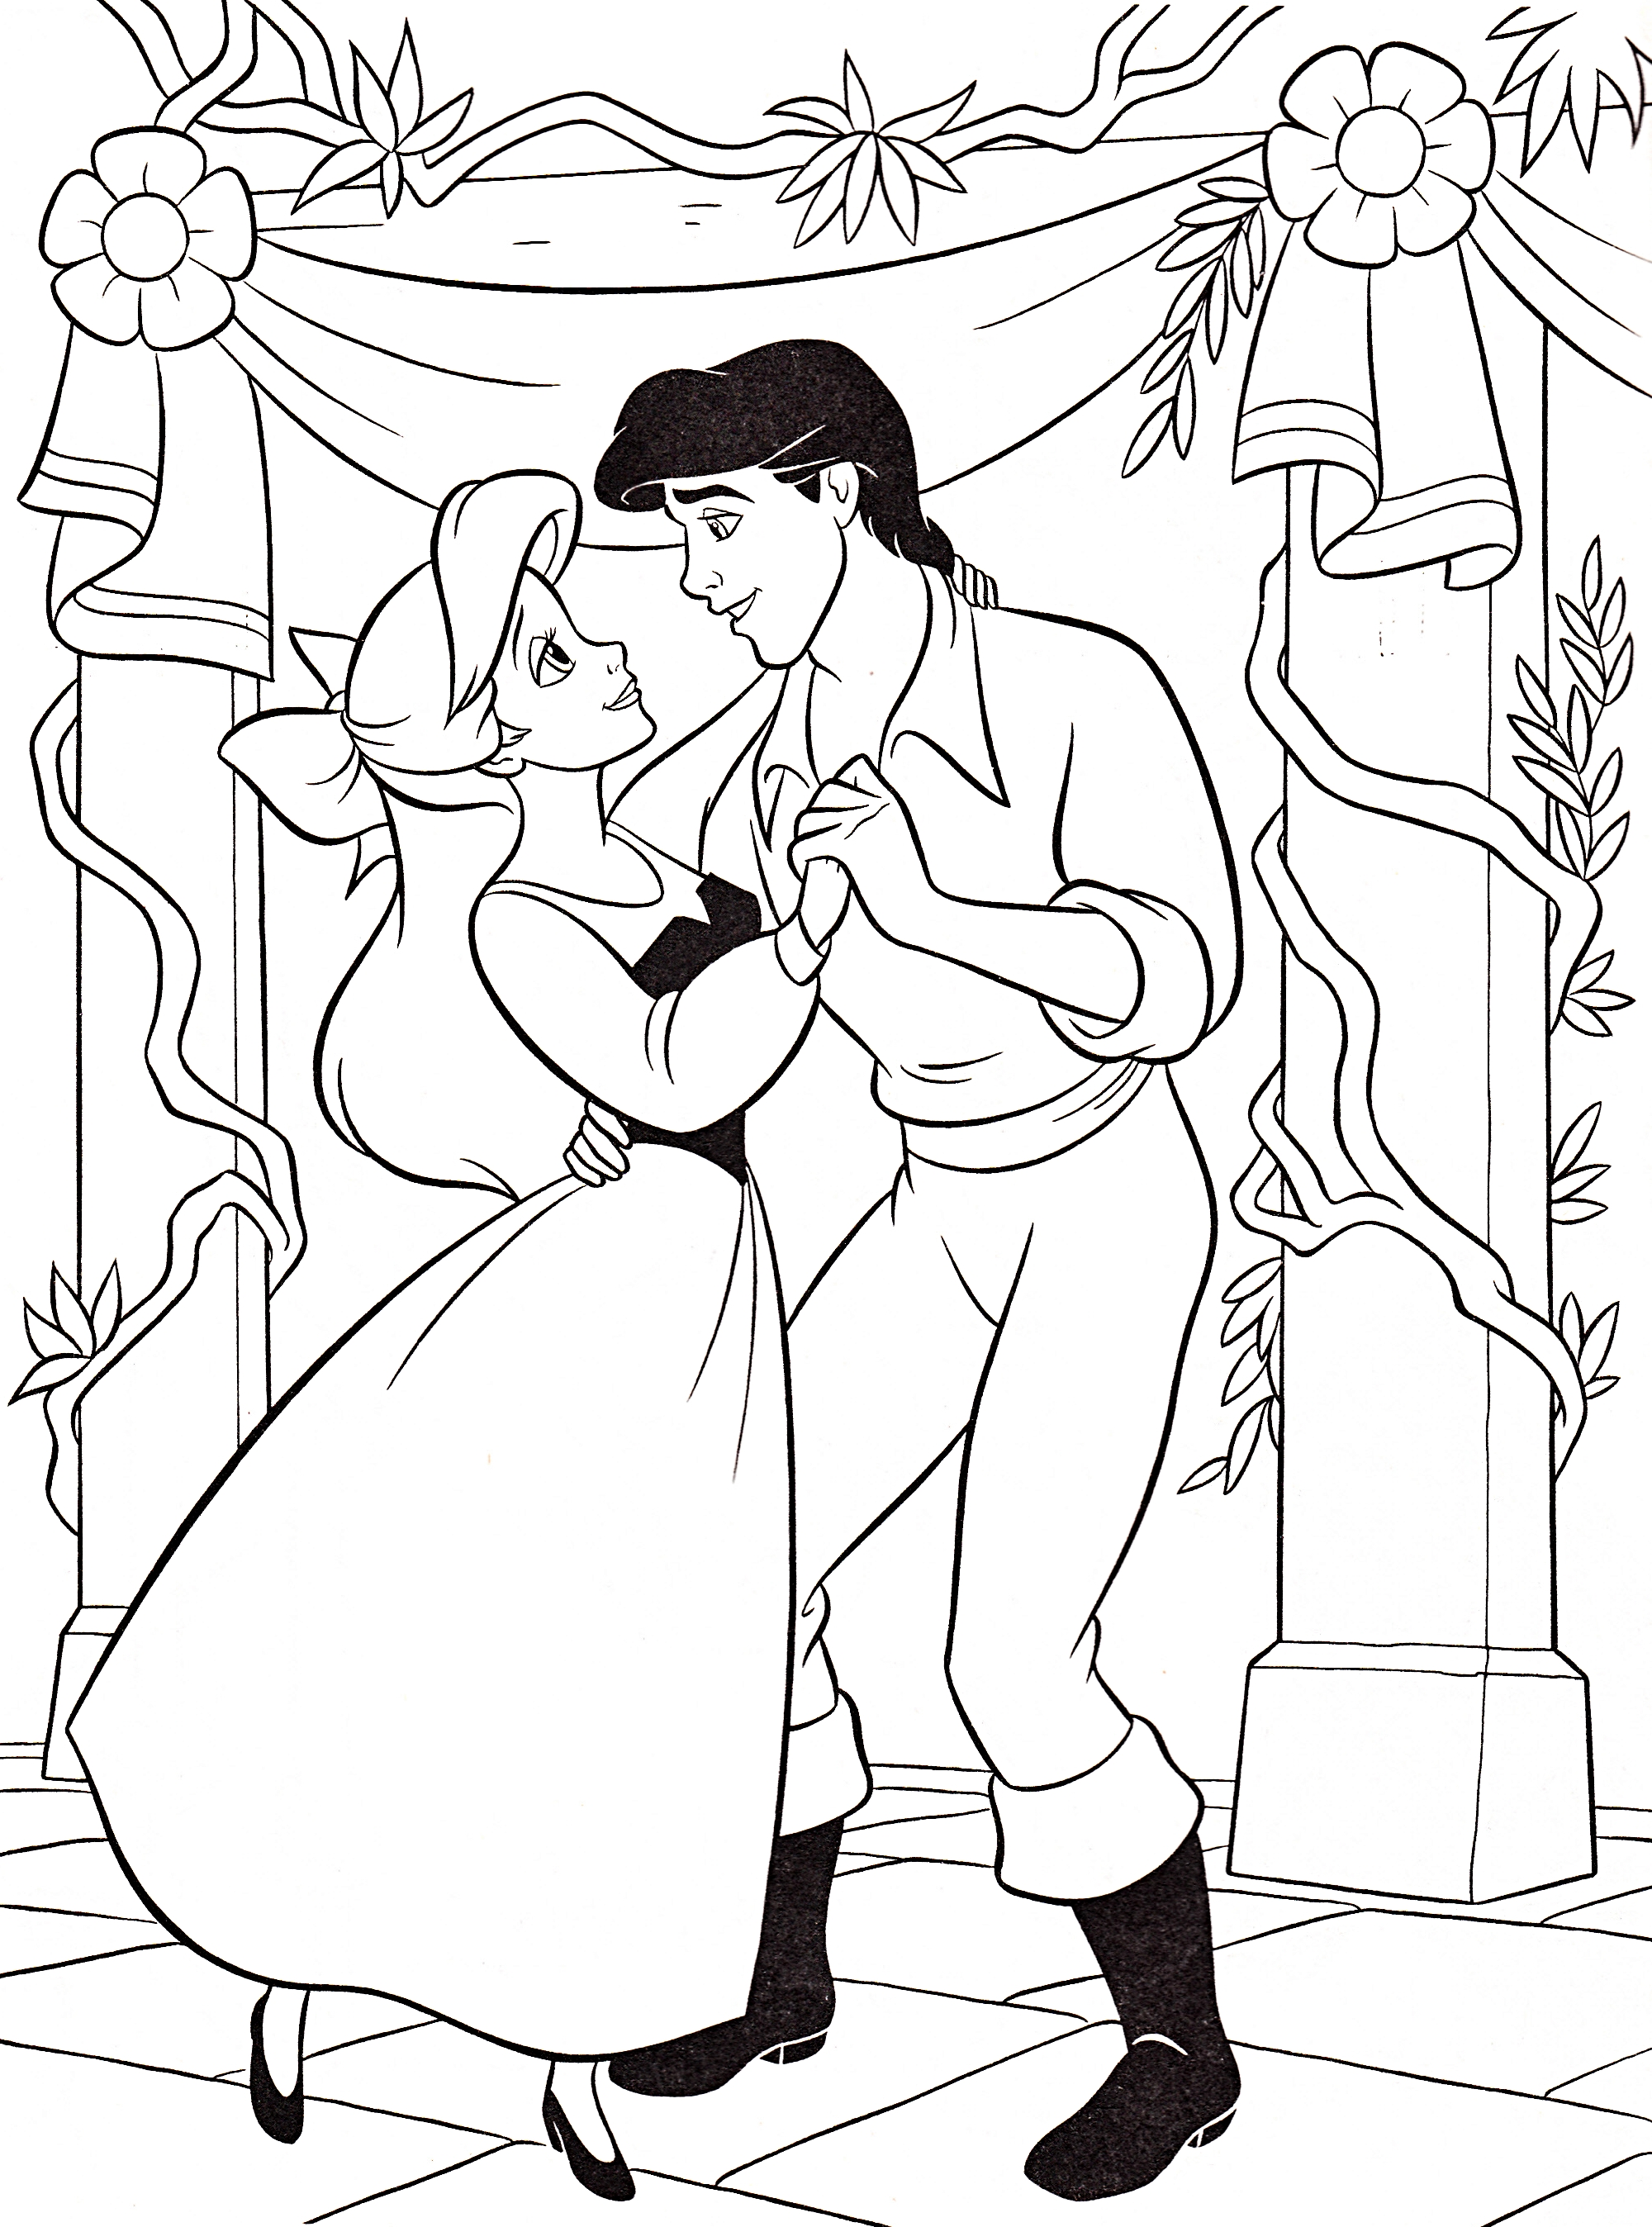 Disney Ariel And Eric Coloring Pages Coloring Pages